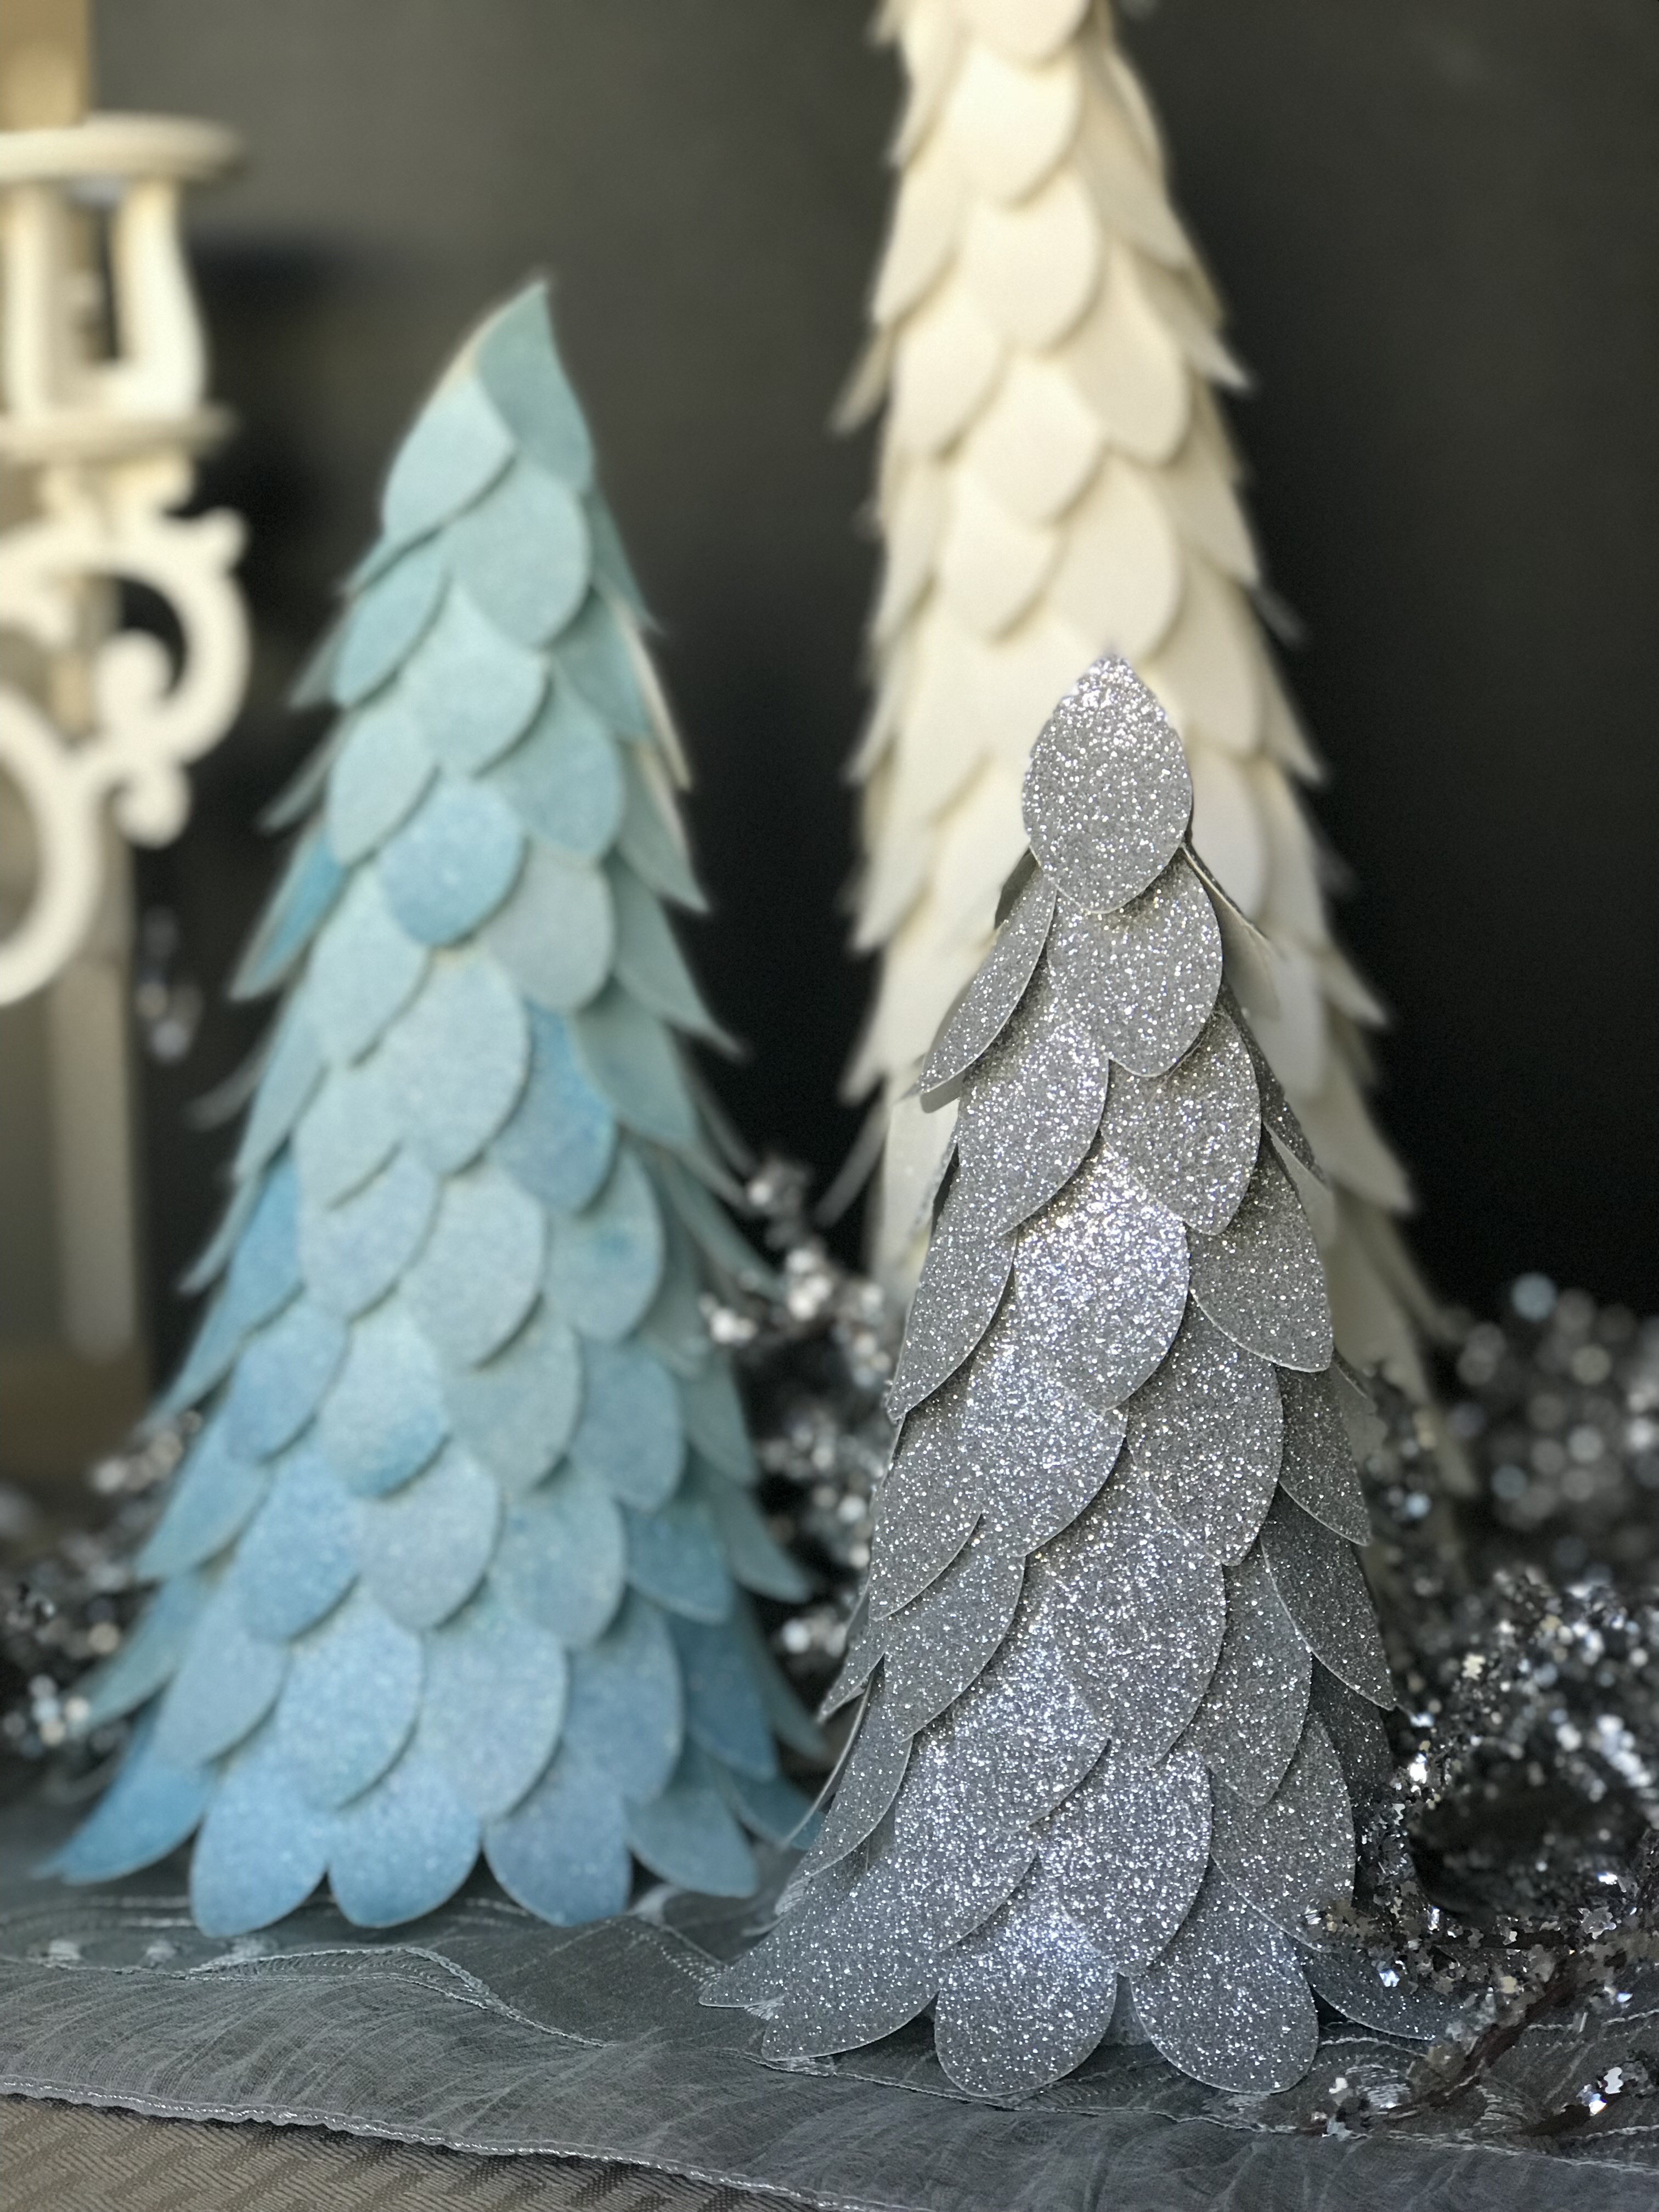 Styrofoam Christmas Tree Craft